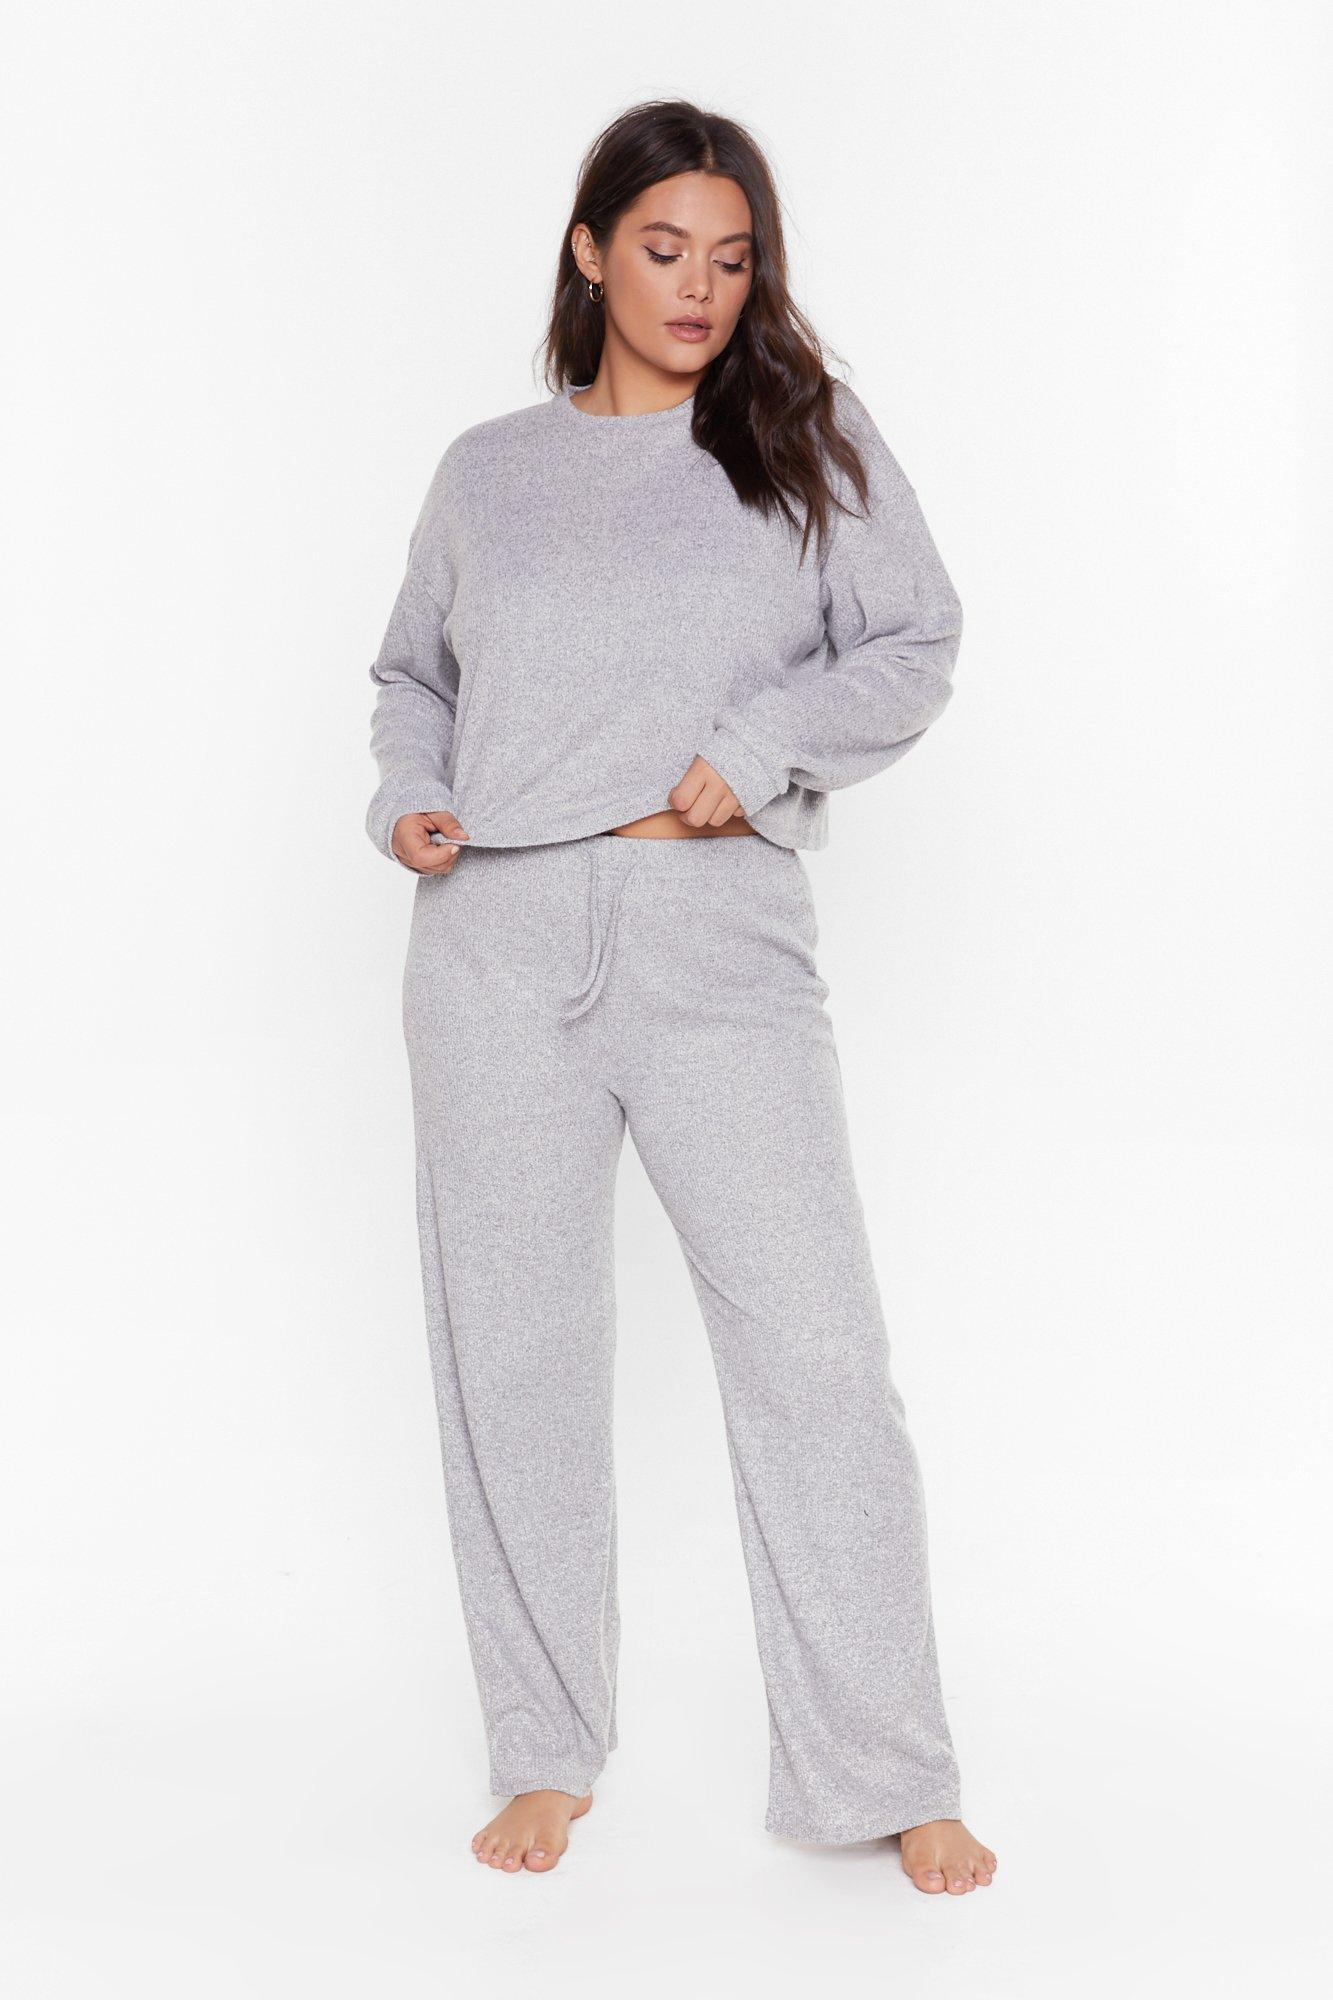 Rib and Repeat Knit Plus Lounge Set 11